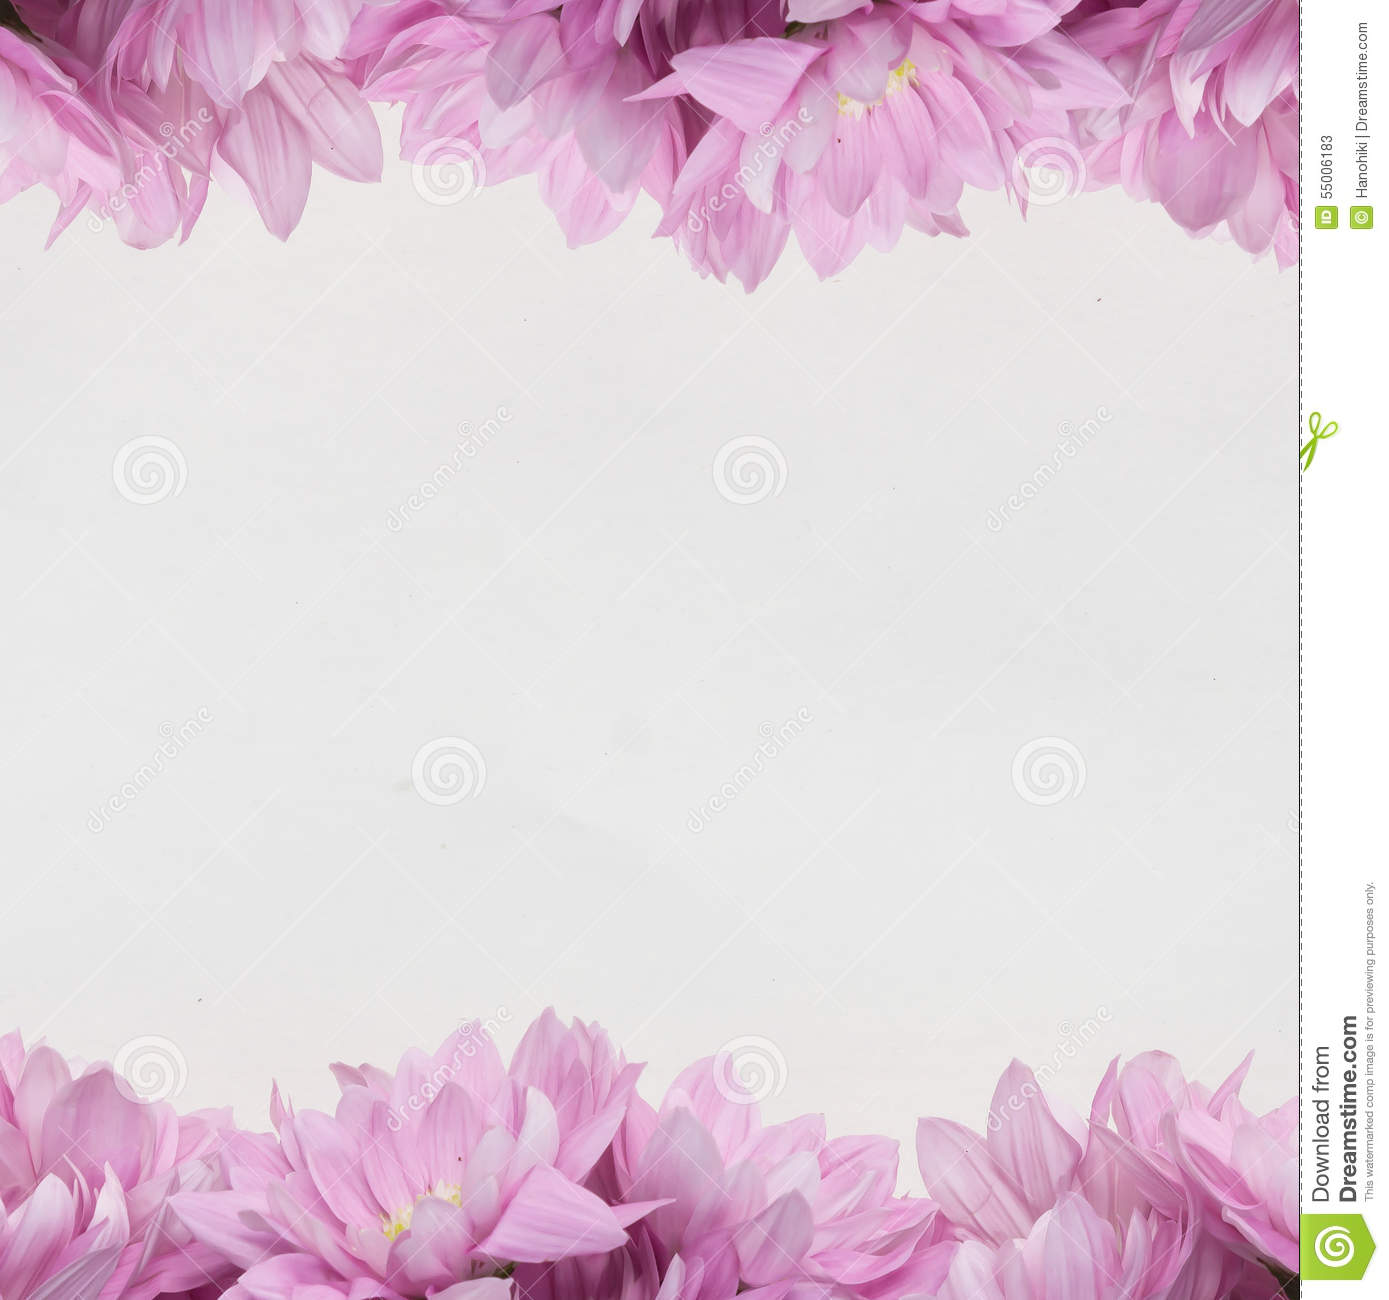 Flower design frame theme with pink flowers stock illustration flower design frame theme with pink flowers stock photos mightylinksfo Choice Image